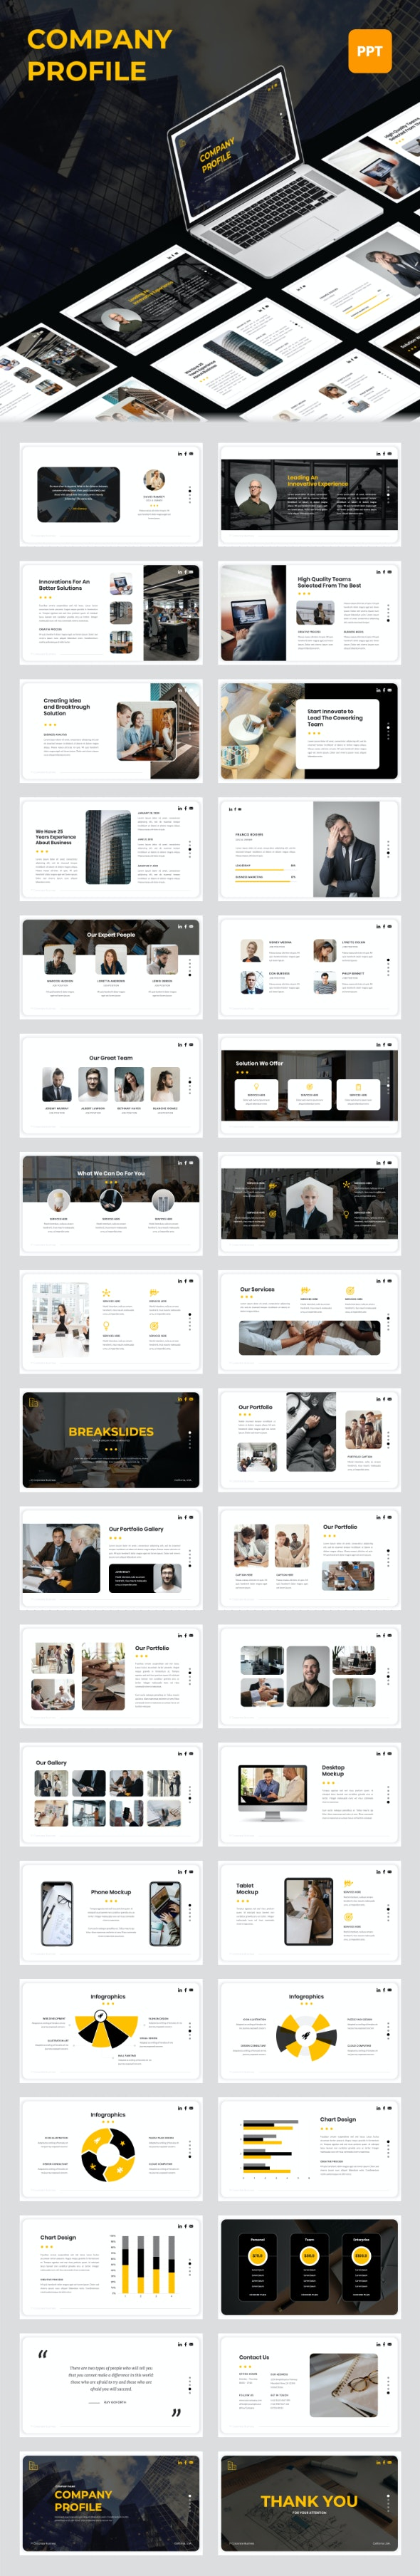 Company Profile - PowerPoint Template - Business PowerPoint Templates